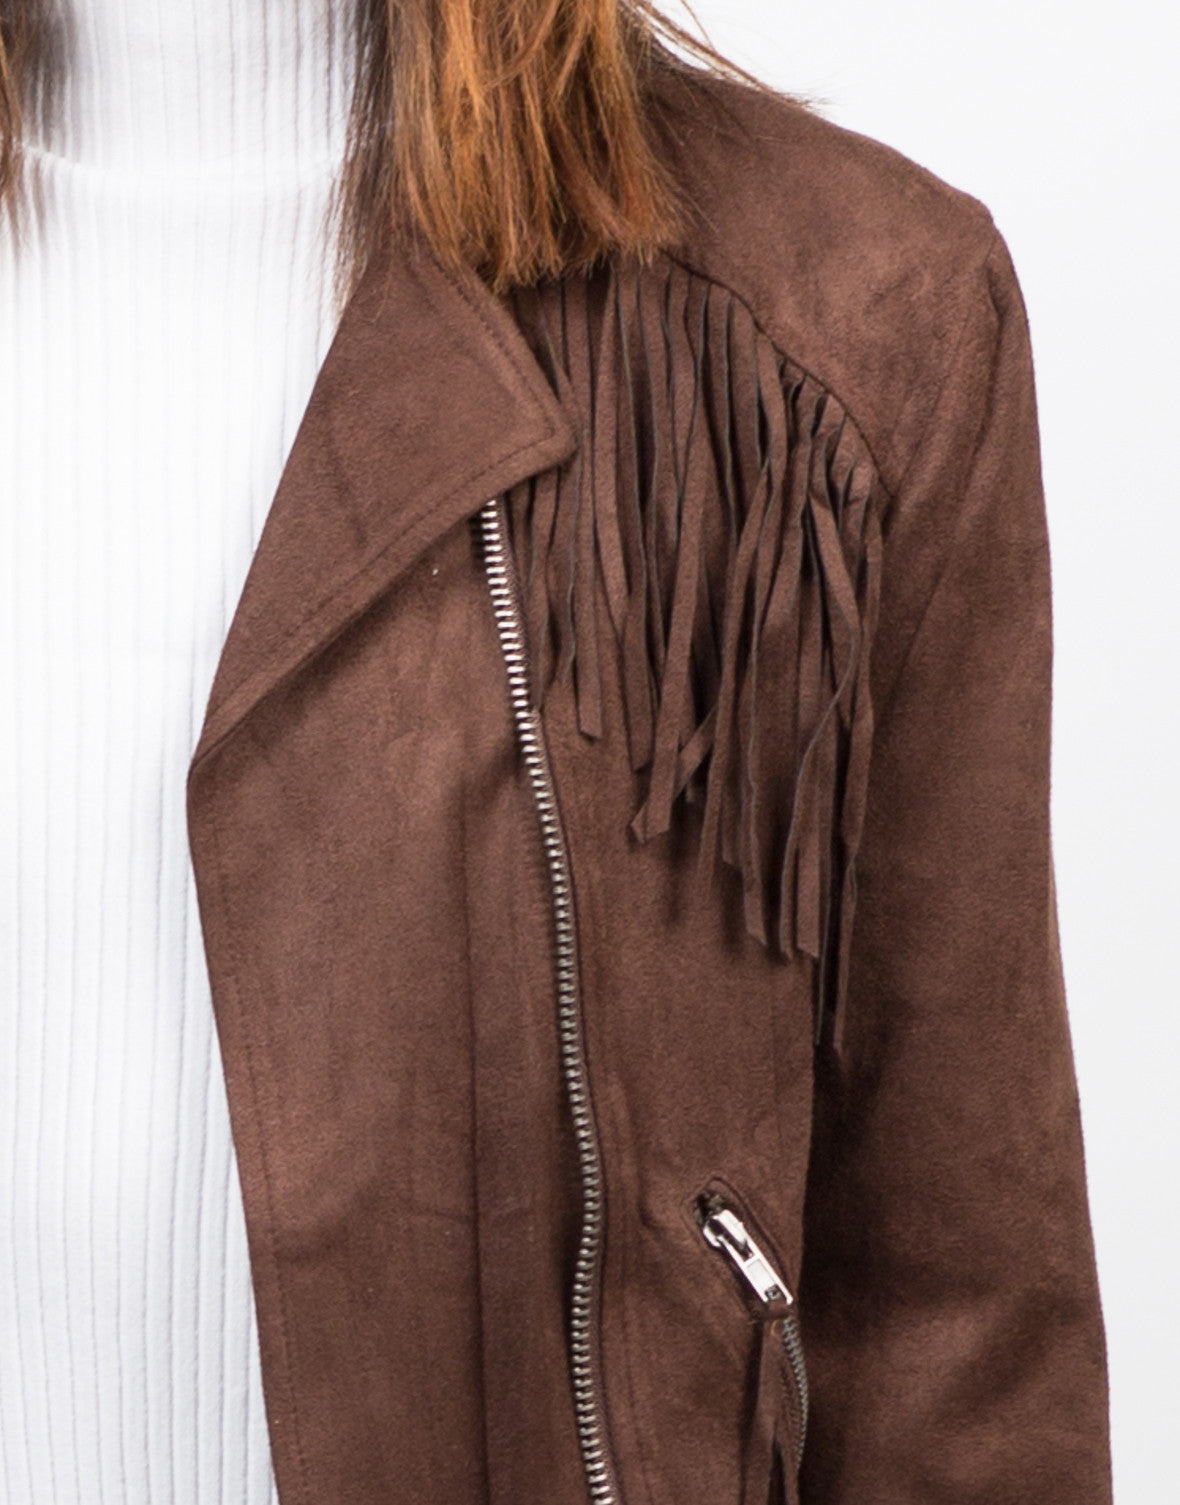 Detail of Fringe Suede Moto Jacket - Brown